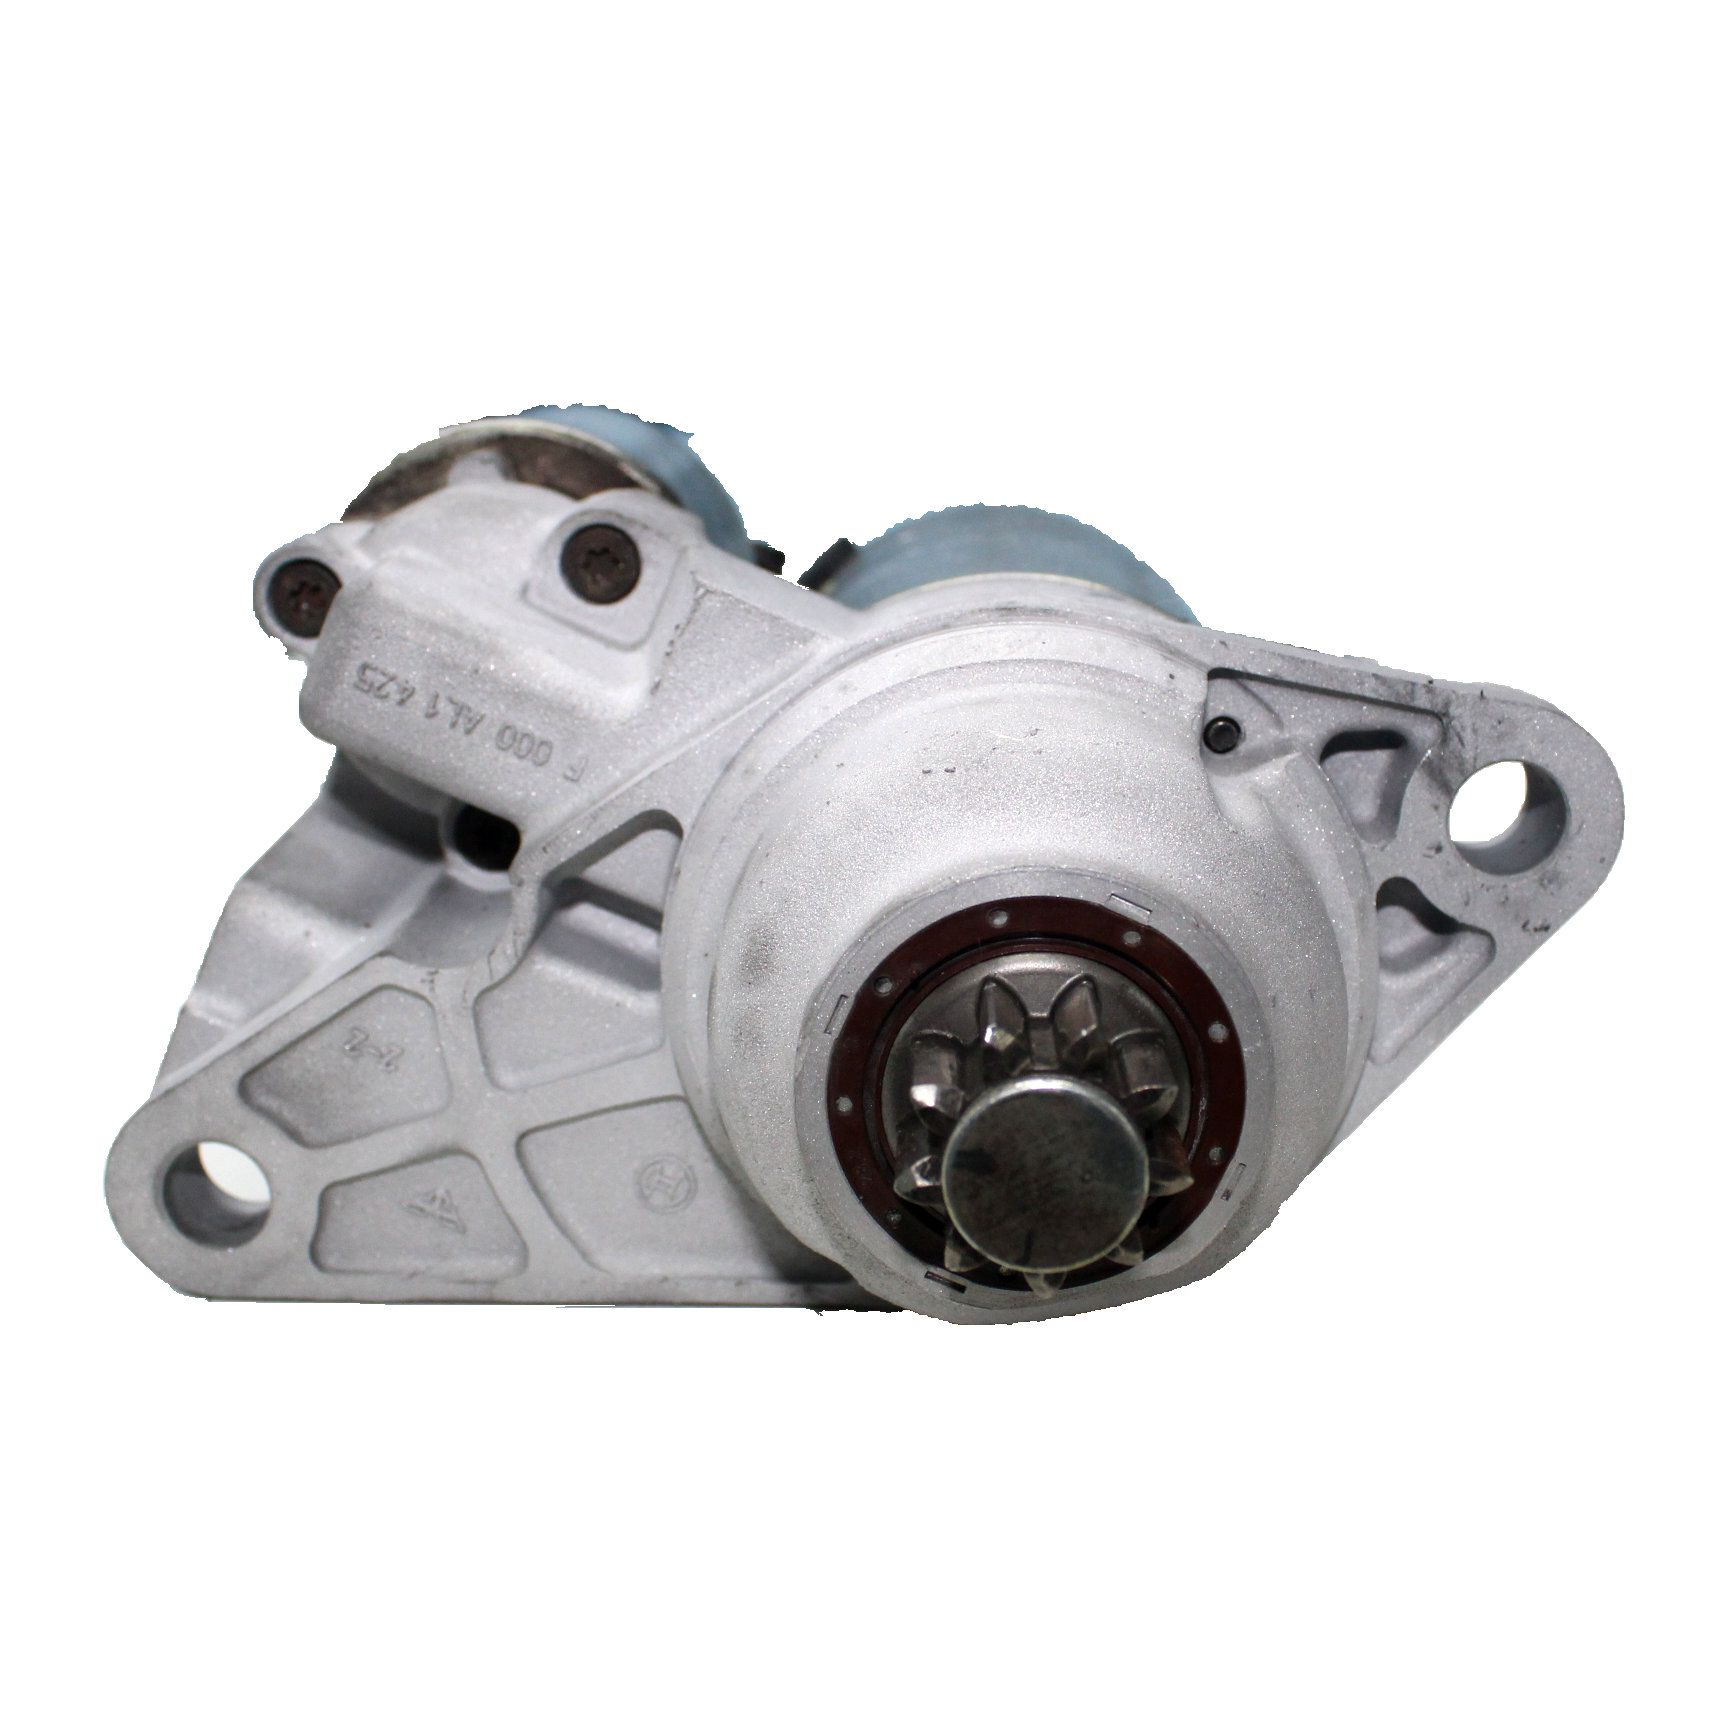 Motor De Arranque Partida Golf, Fox, Gol G5, Polo - Recon